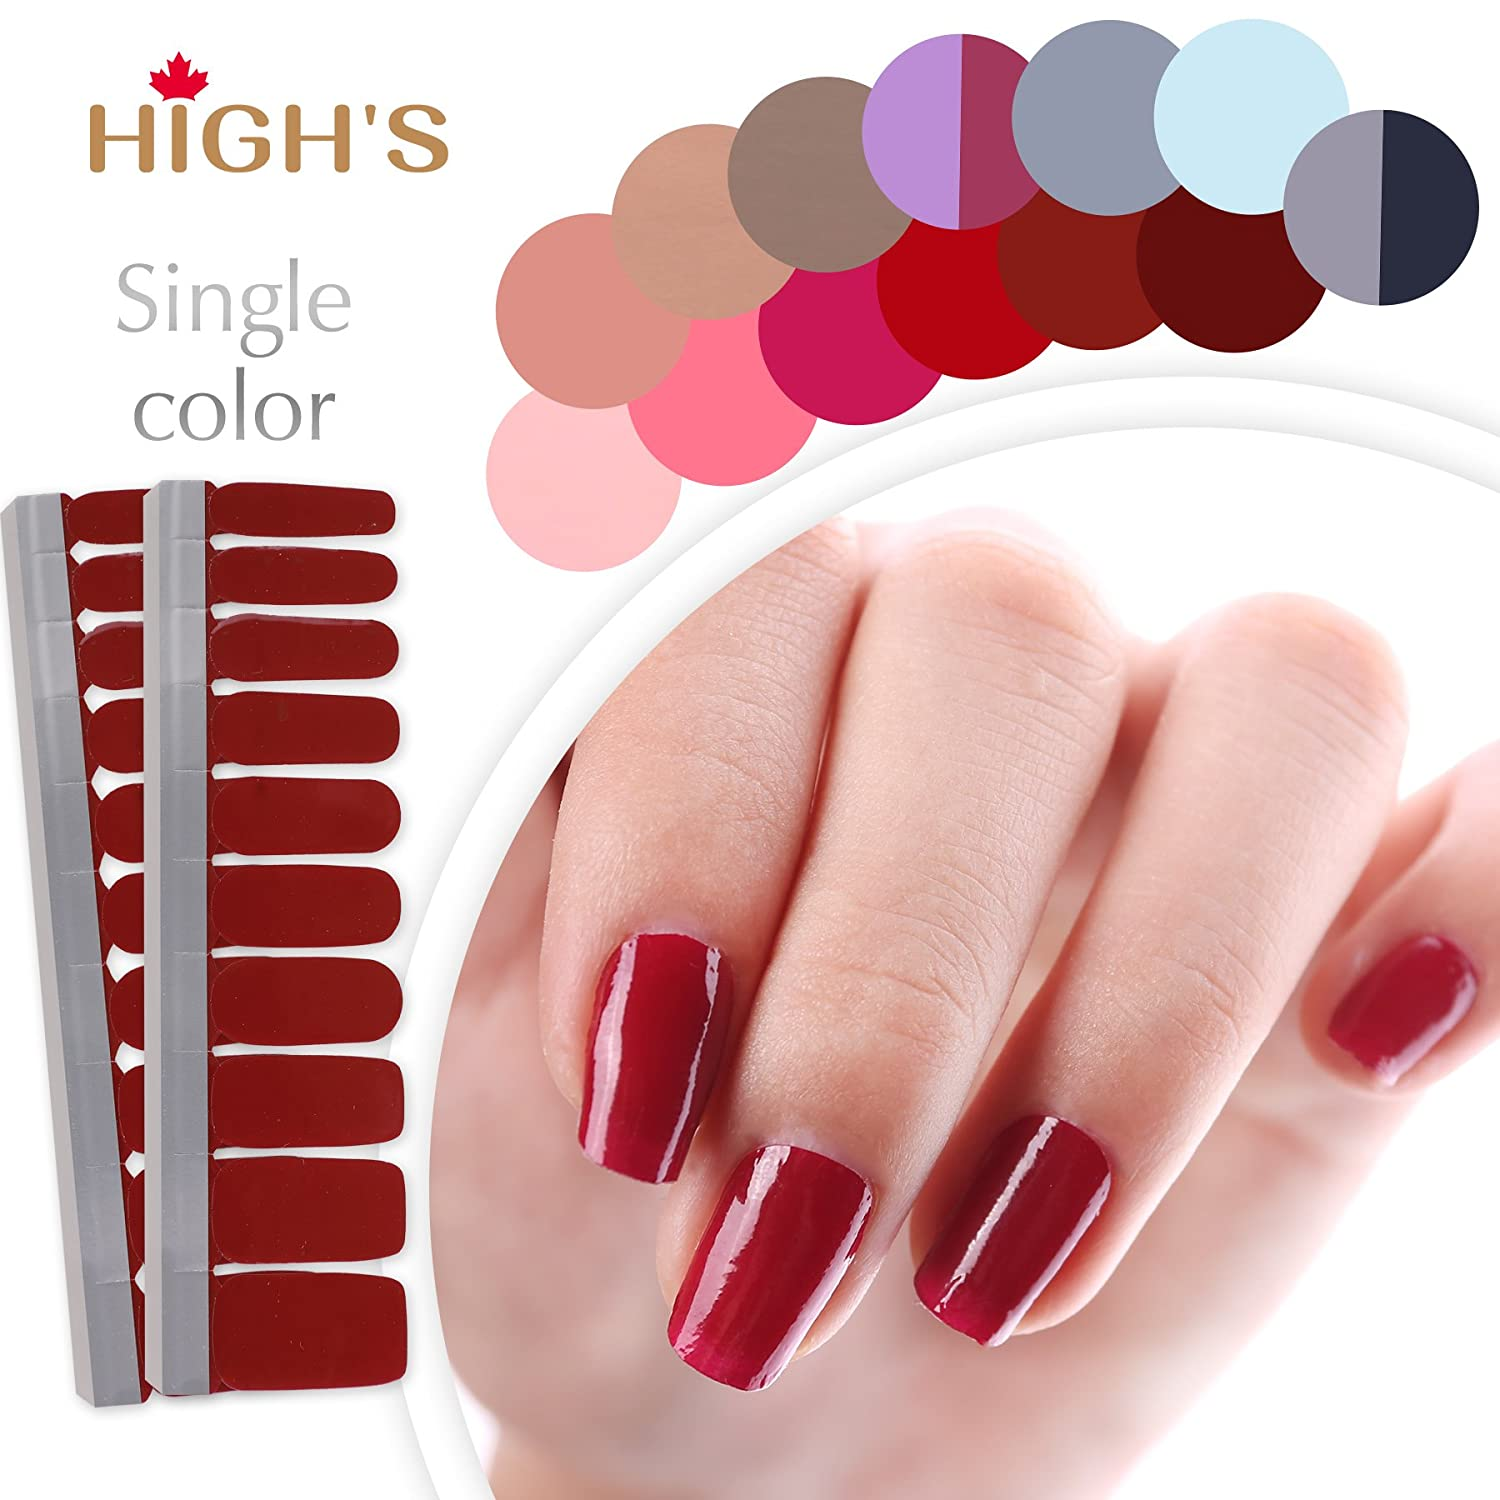 HIGH'S Single Color Series Classic Collection Manicure Nail Polish Strips Nail Wraps, Dark Salmon HIGH' S